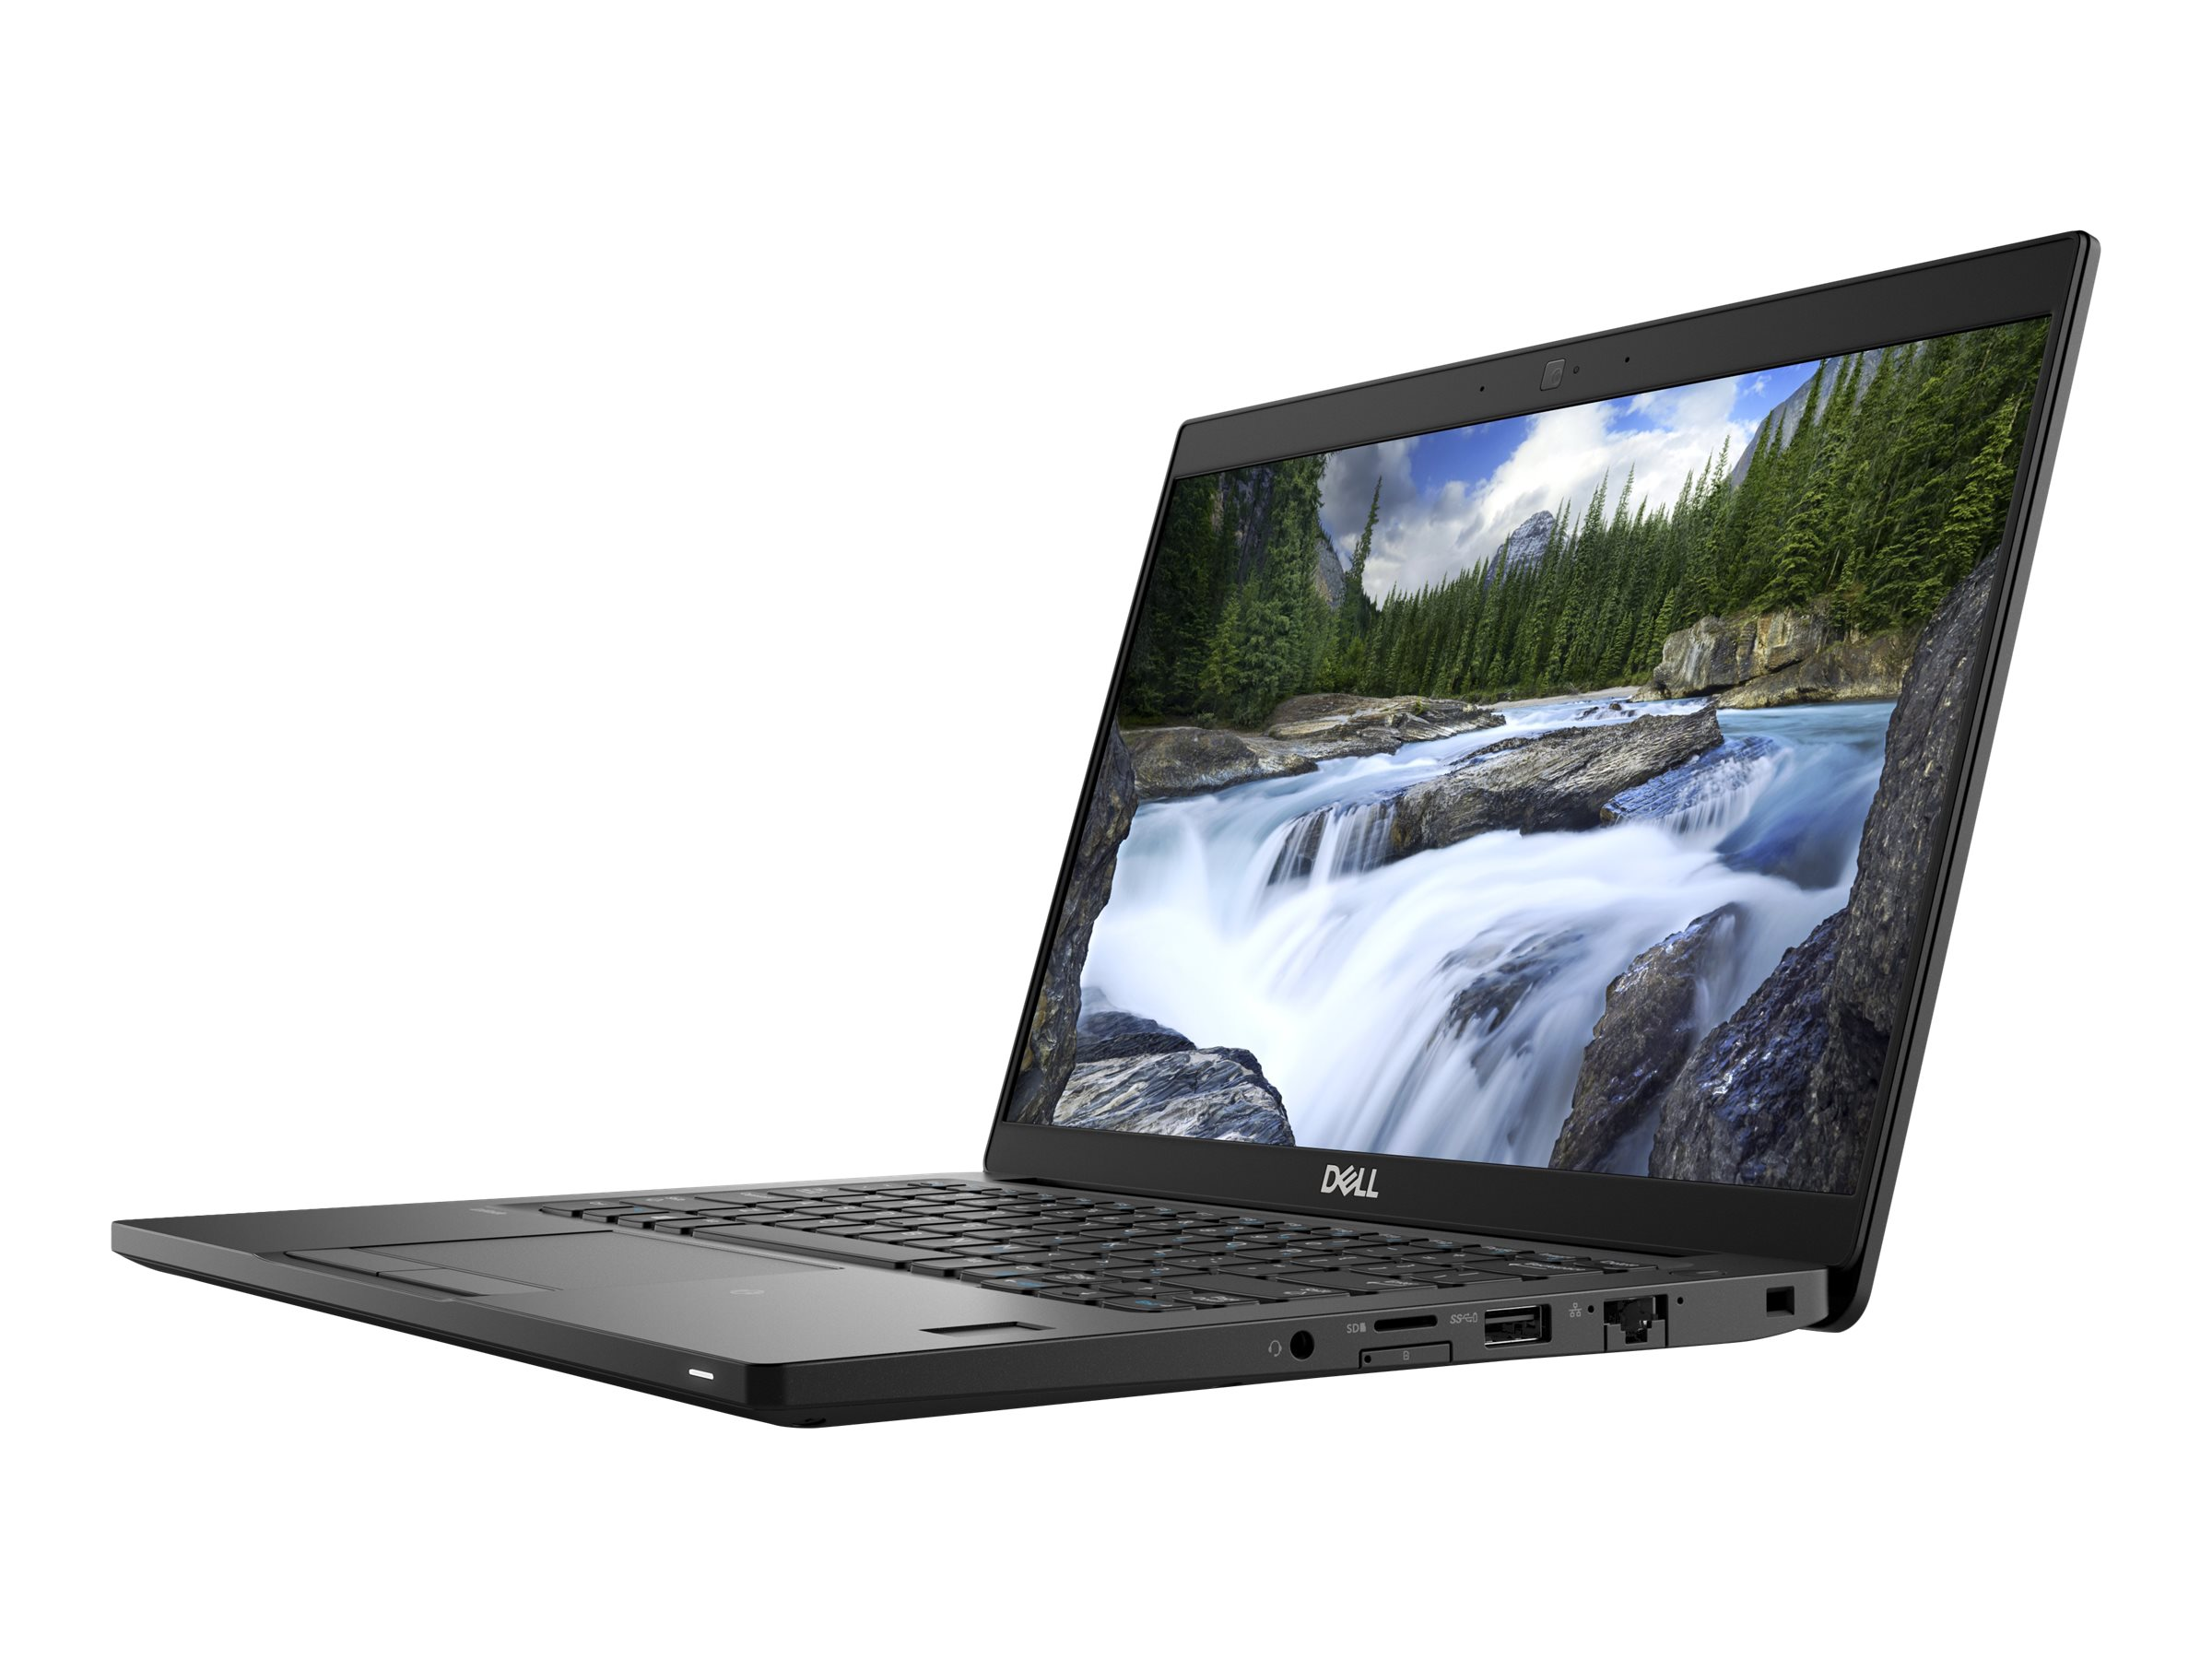 Dell Latitude 7380 - Core i5 7300U / 2.6 GHz - Win 10 Pro 64-Bit - 8 GB RAM - 256 GB SSD - 33.8 cm (13.3